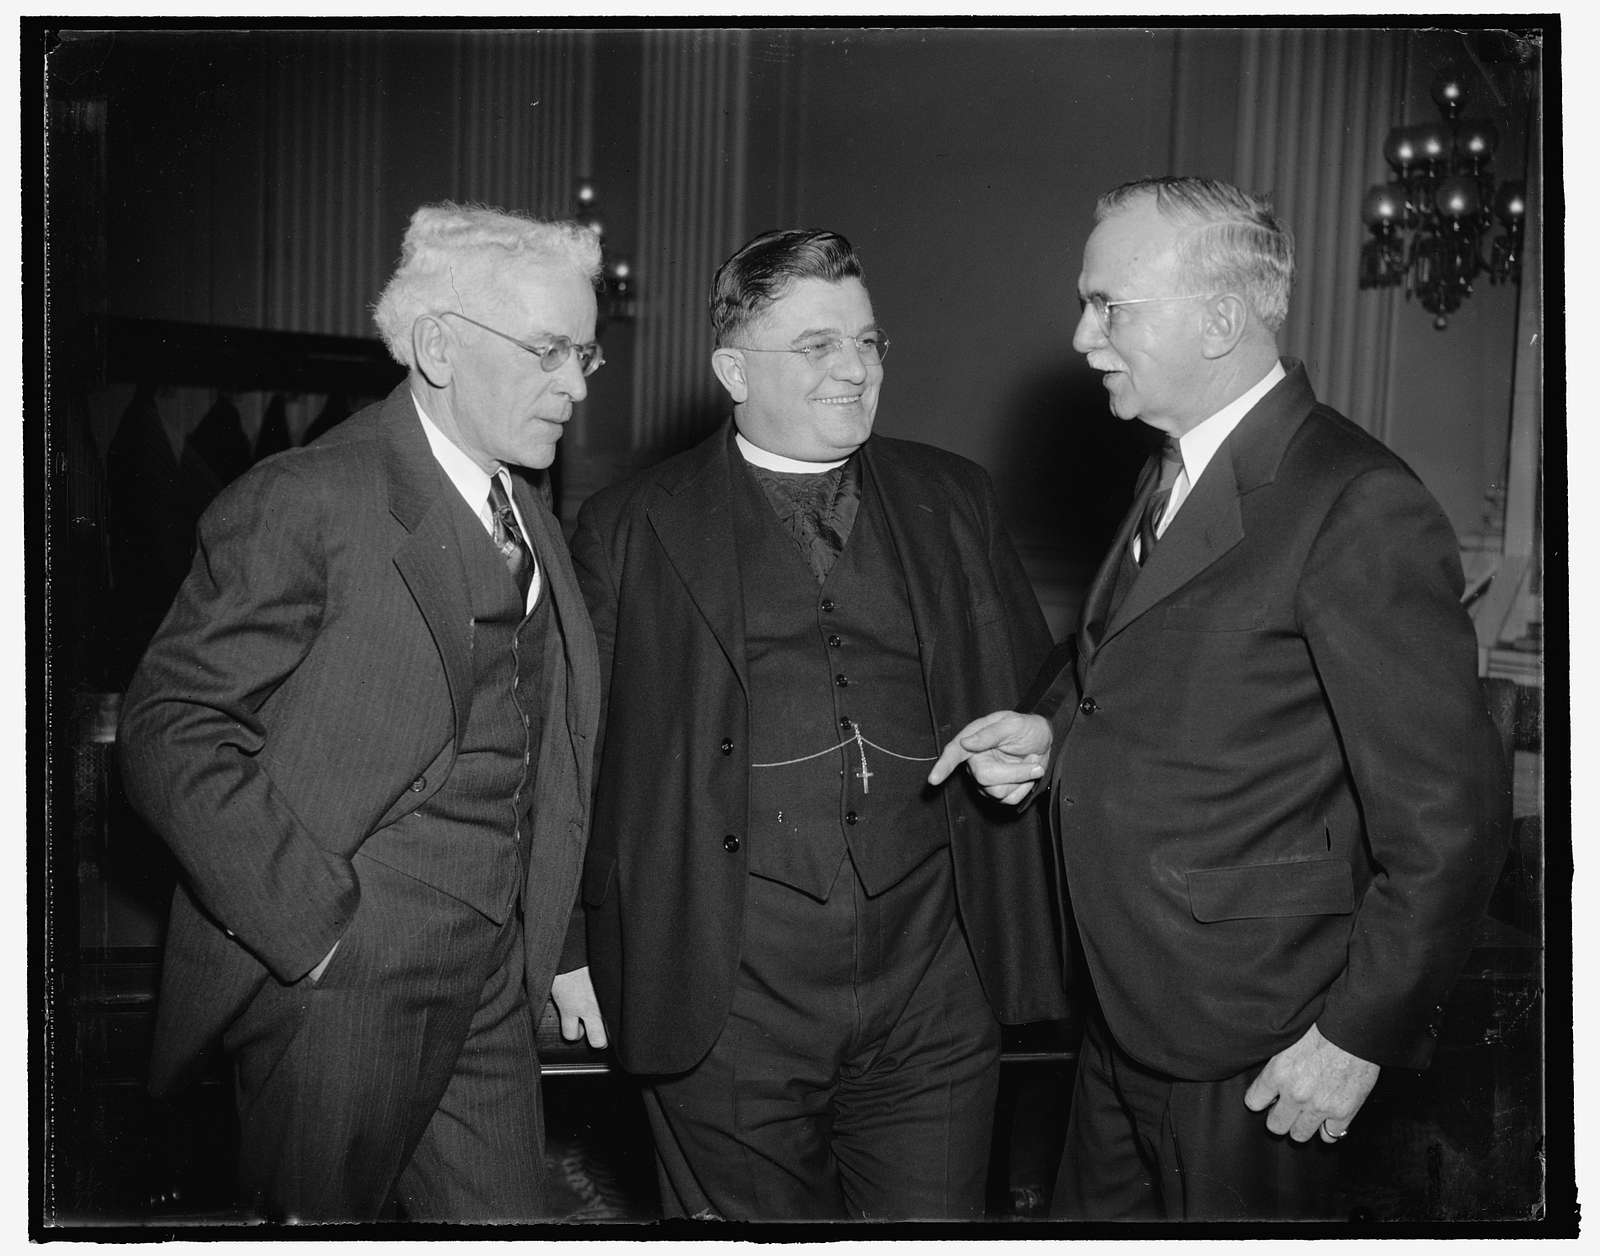 Judge John W. Carabine, of Springfield, Mass.; Rev. Alfred Holt, Balto., Md.; Thomas Boorde, Wash., D.C